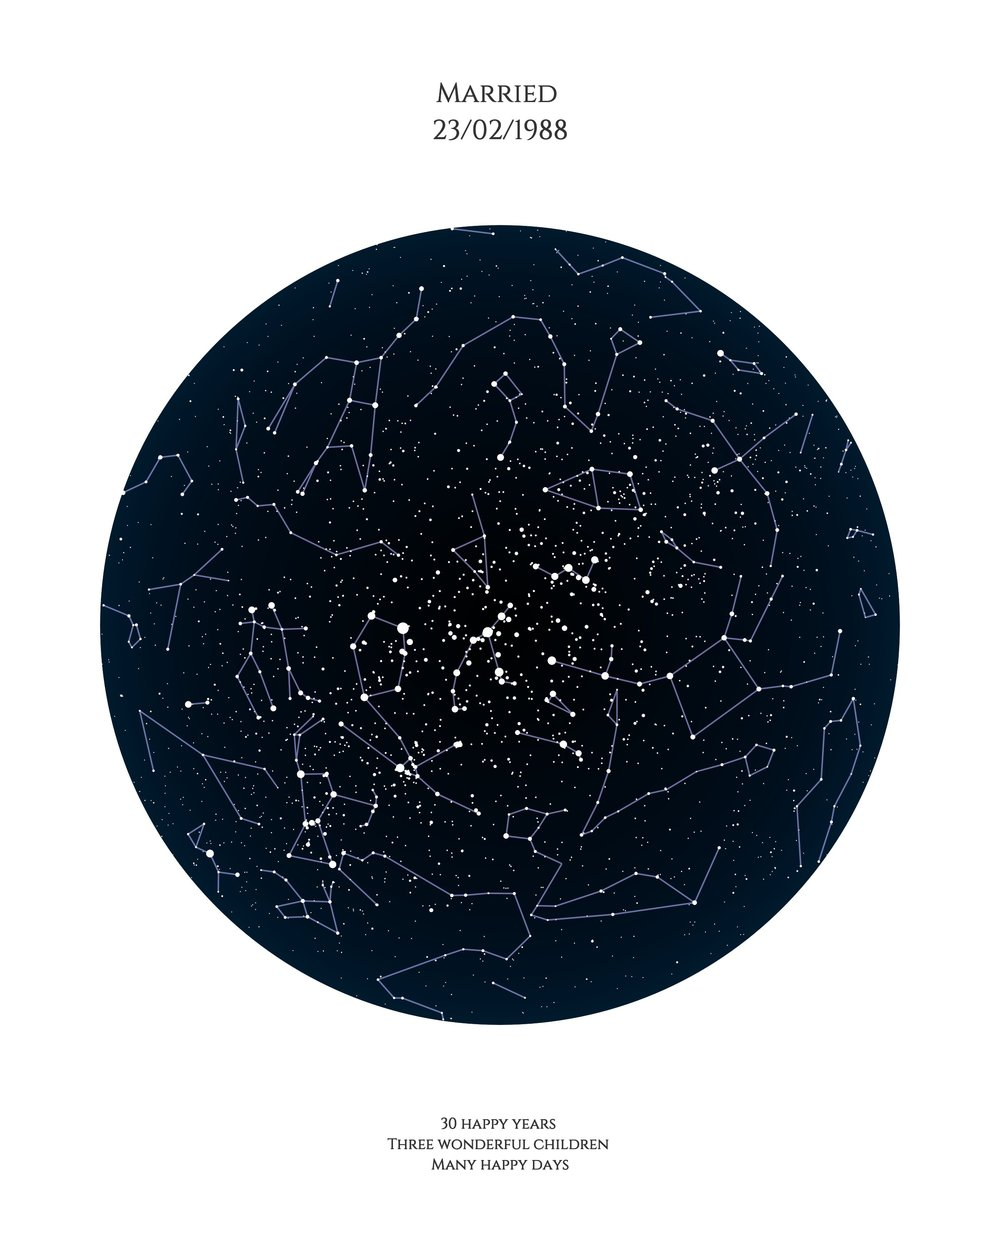 Star map - Use our star map design to celebrate a special occasion which means a lot to mum. As well as capturing the constellations in the sky, you can personalise this design with dates, quotes and captions for a meaningful Mother's Day gift.